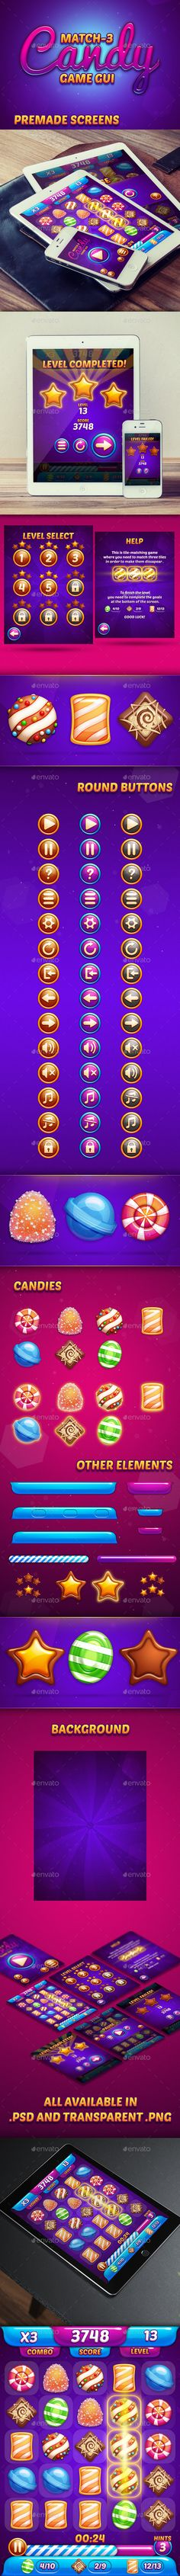 #Candy #Game #GUI On at http://graphicriver.net/item/match3-candy-game-gui/11787993?ref=graphicon